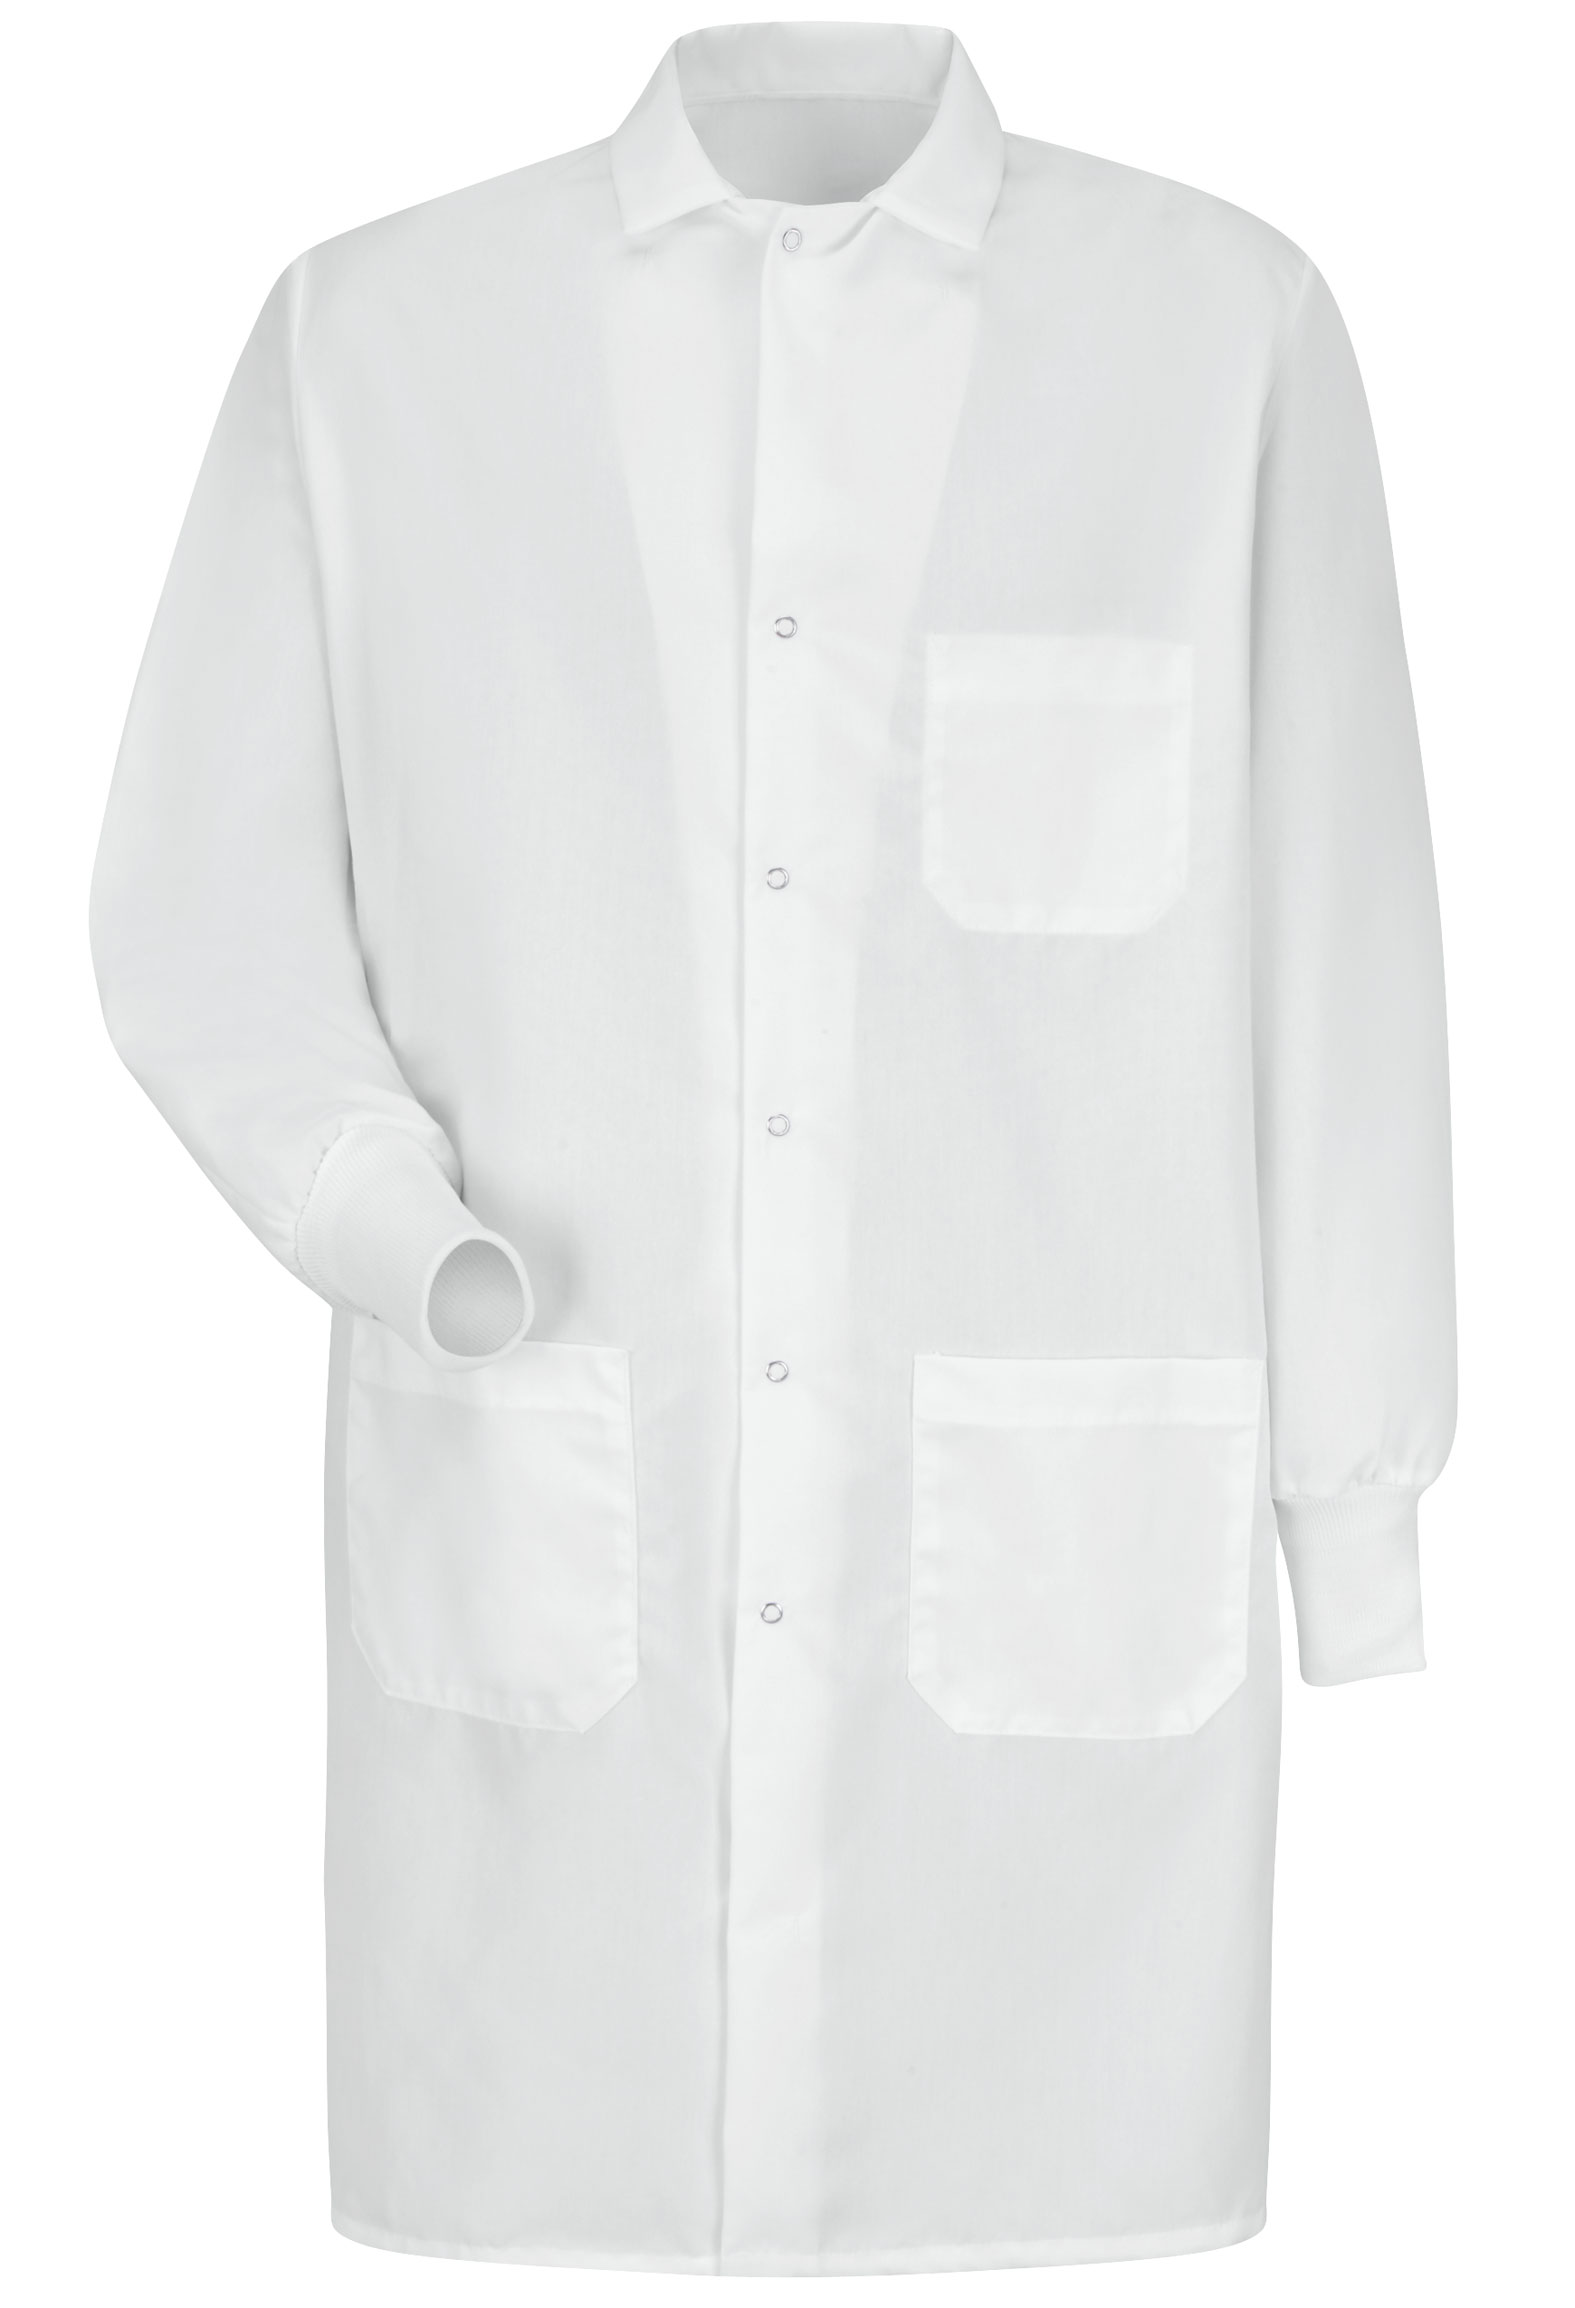 Red Kap Unisex Gripper Closure Cuffed Lab Coat